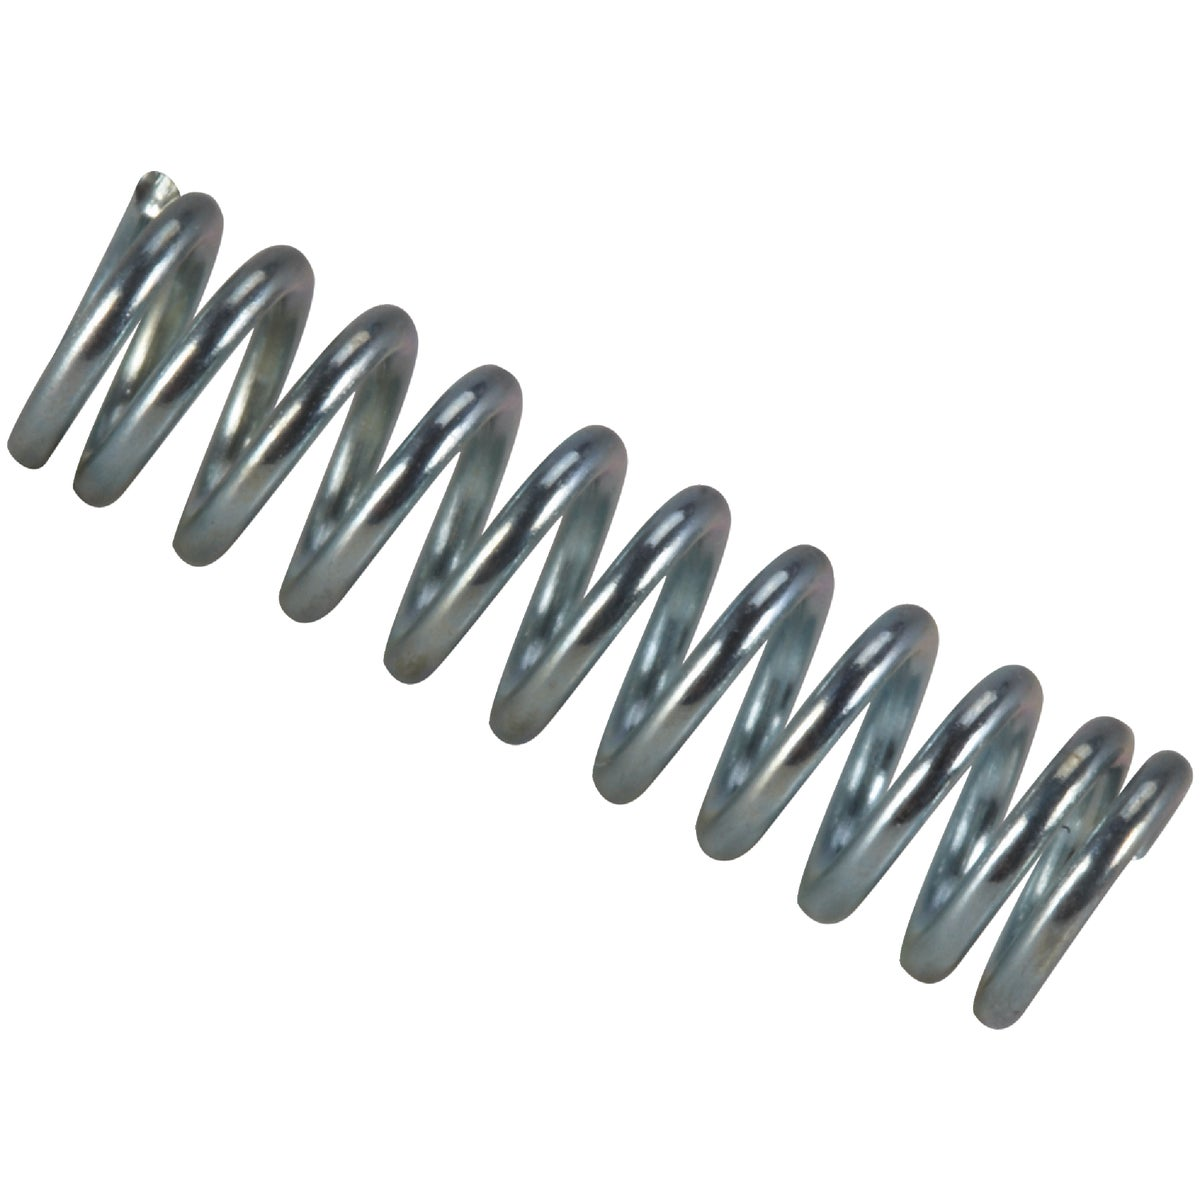 COMPRESSION SPRING - C-612 by Century Spring Corp